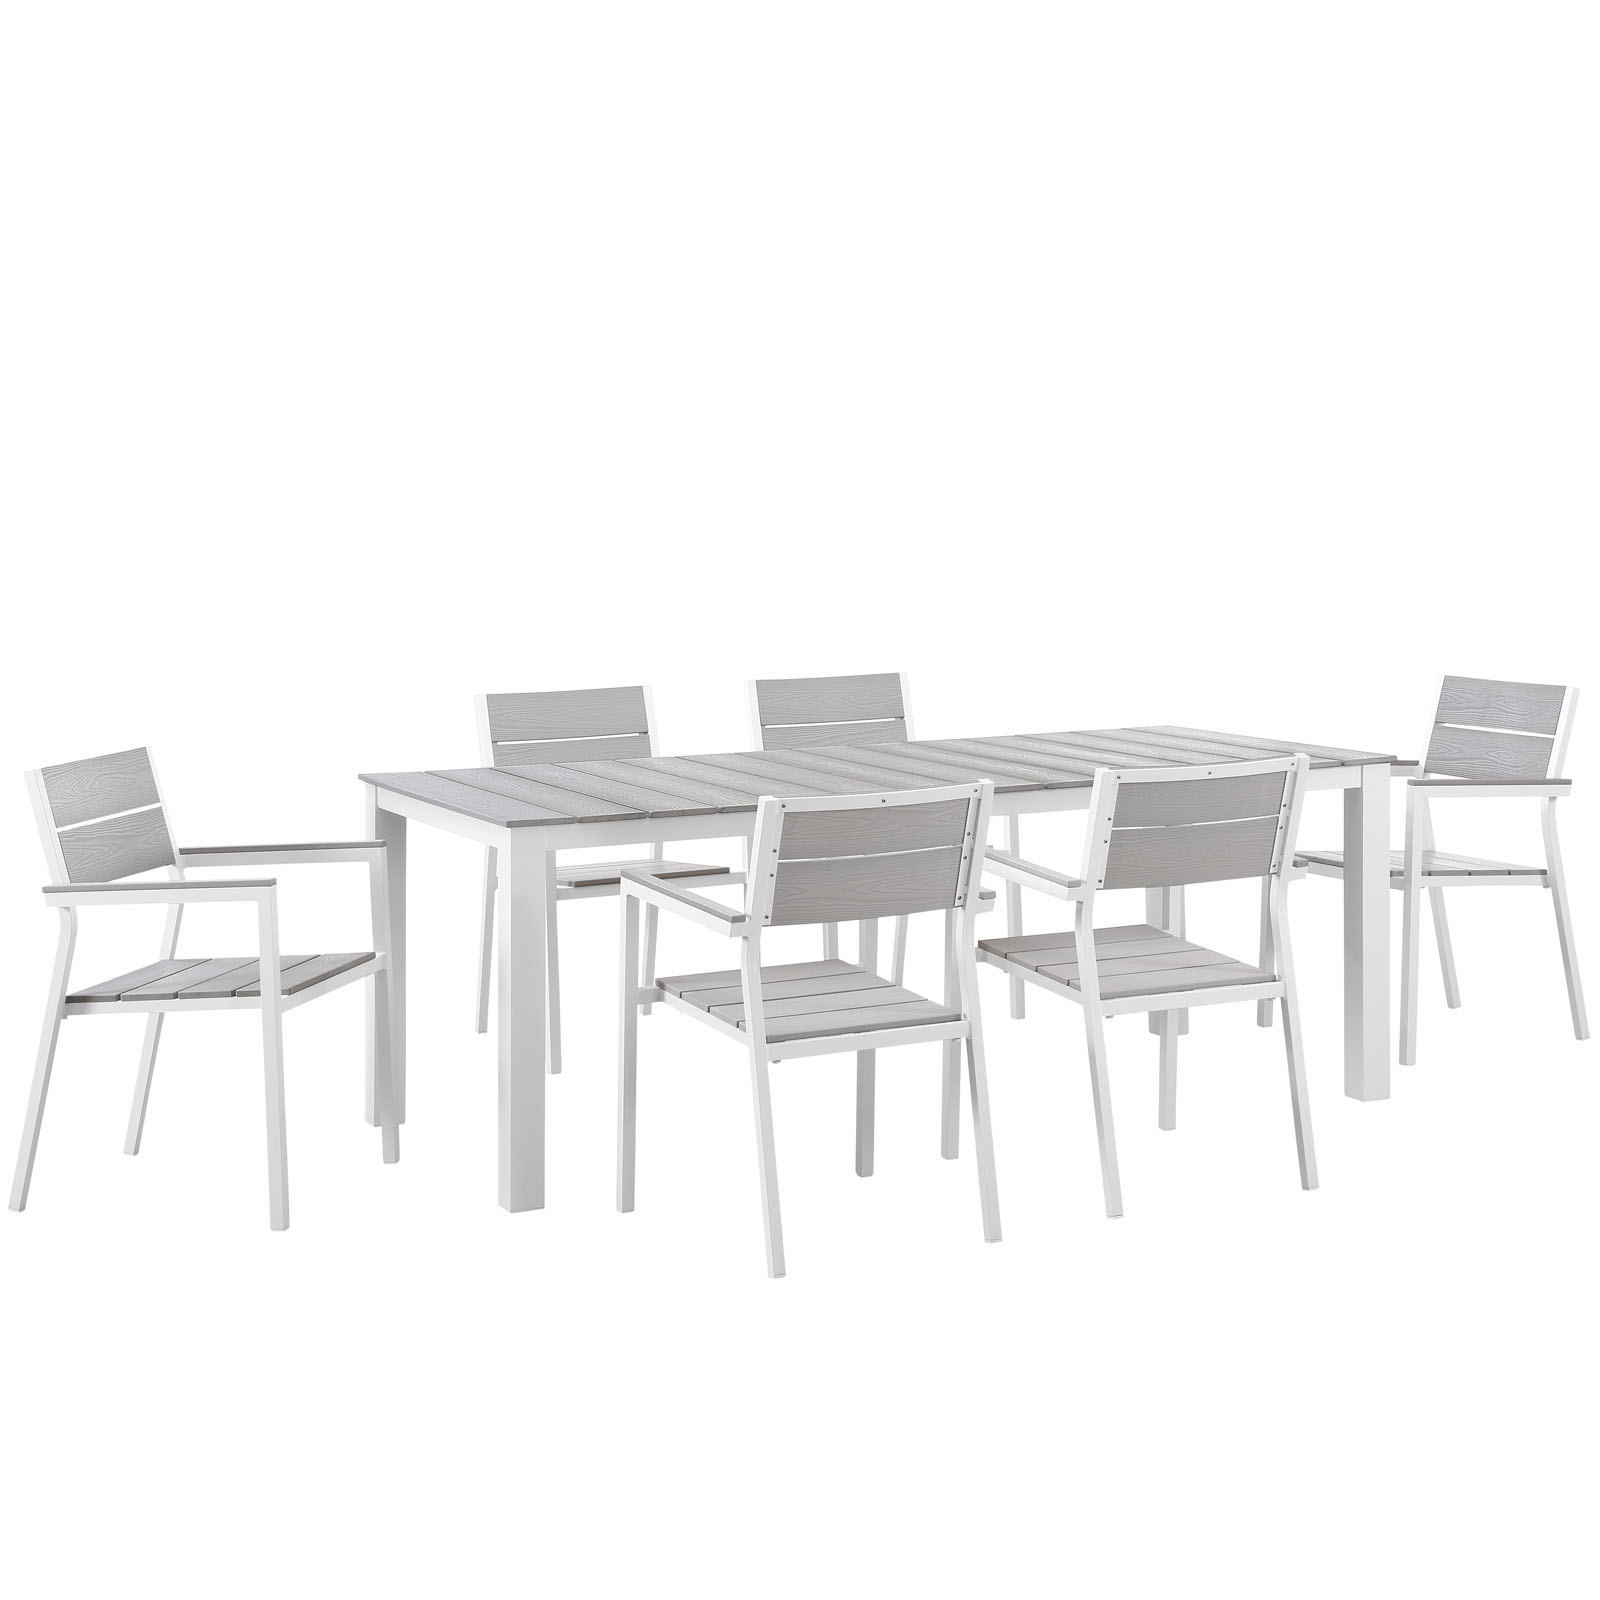 Modern Urban Contemporary 7 pcs Outdoor Patio Dining Room Set, White Light Grey Steel by